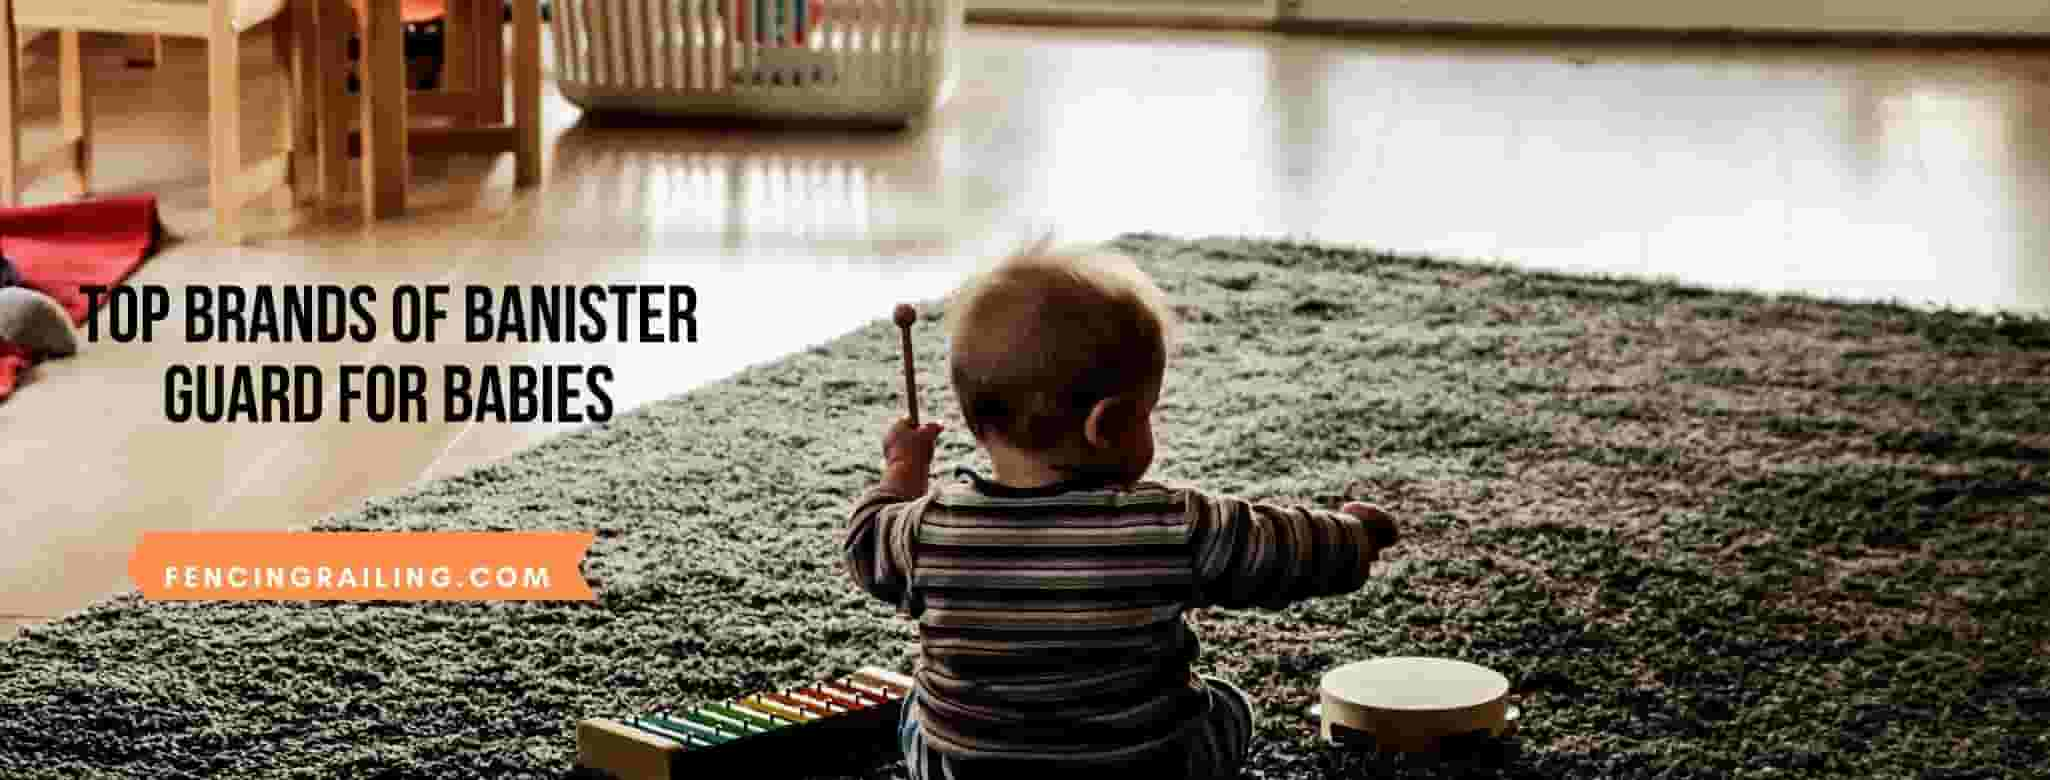 best Banister Guard For Babies